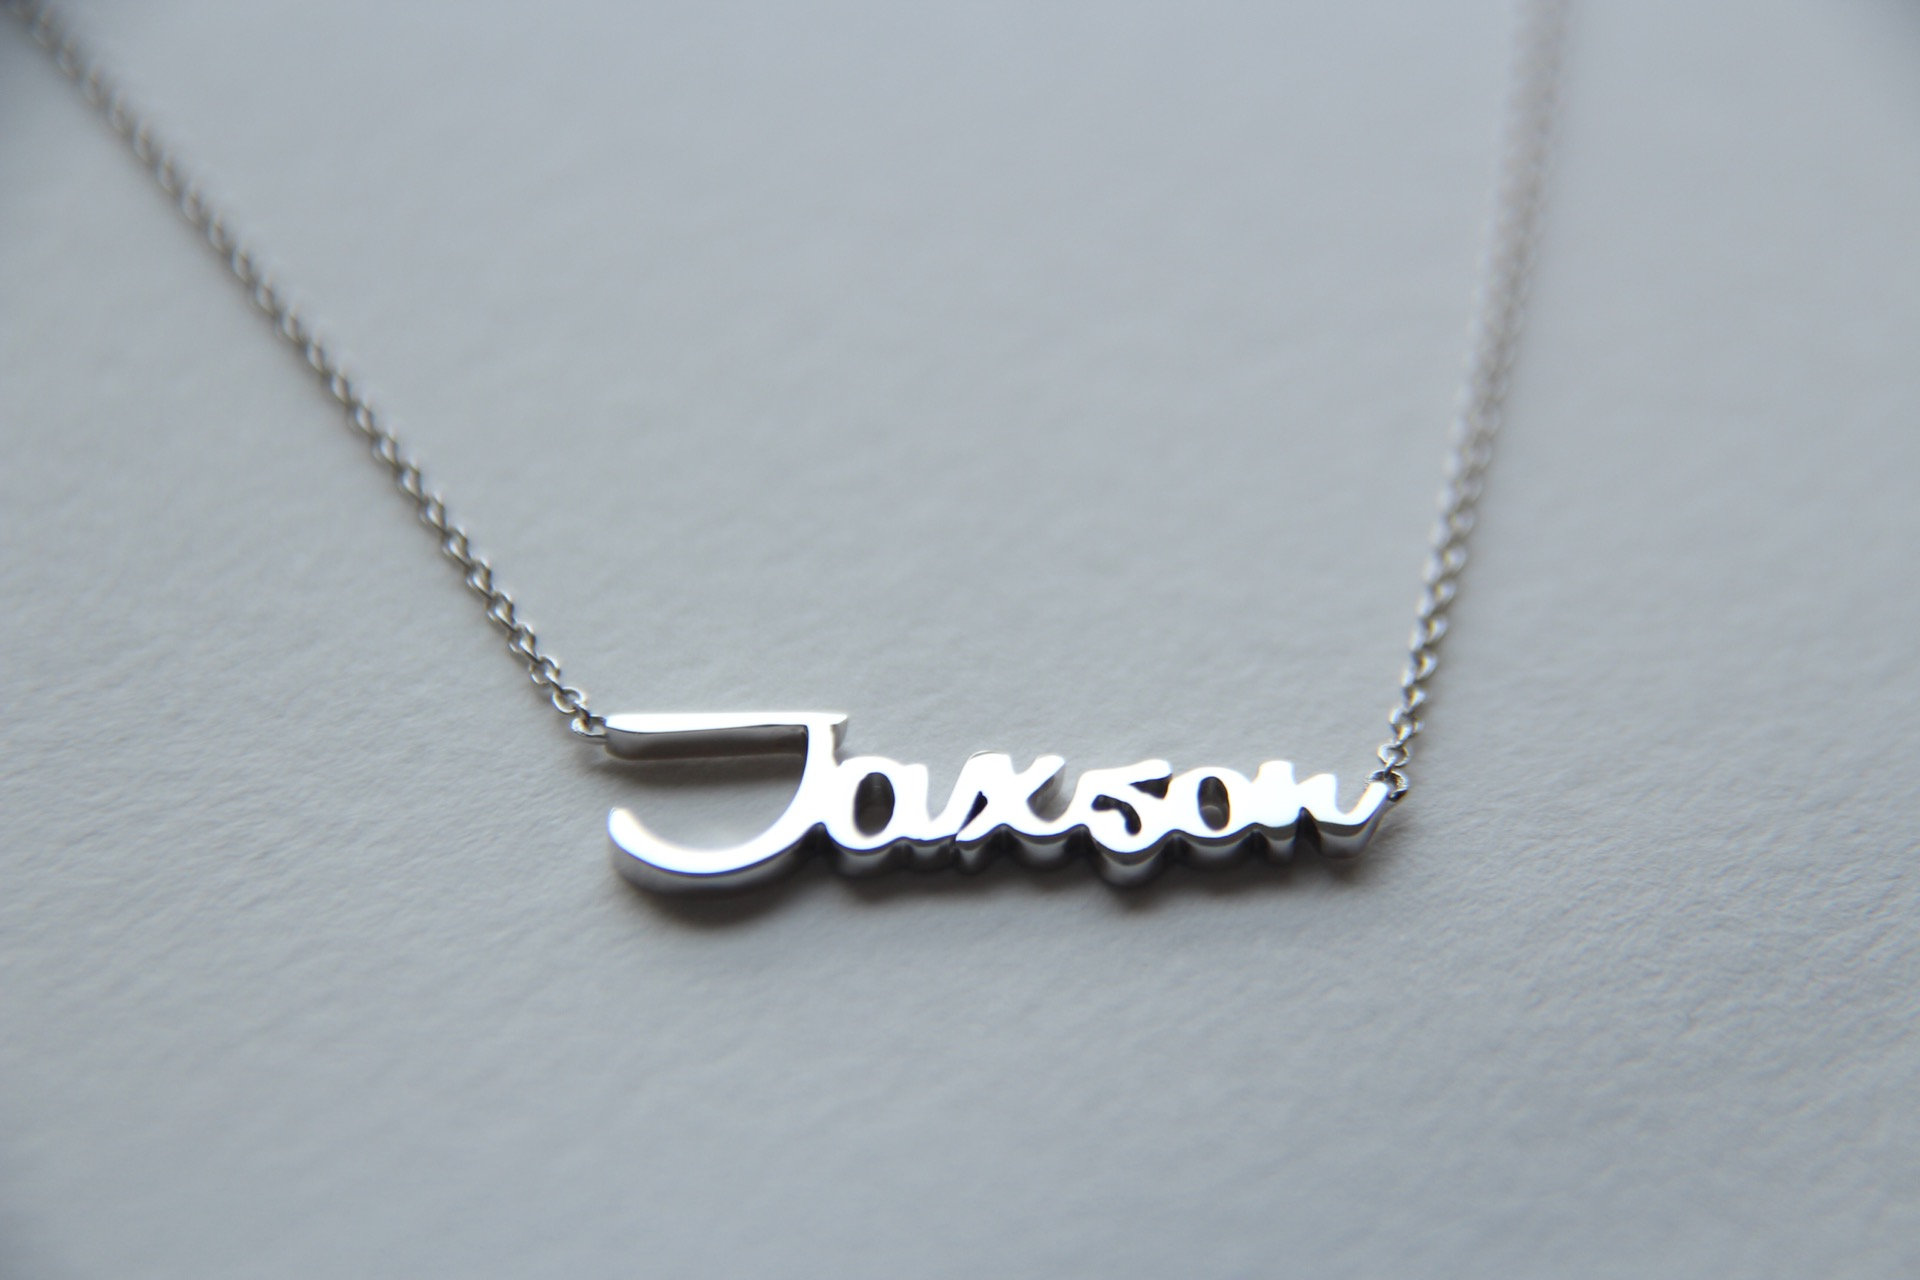 6a552ae285278 Tiny name necklace